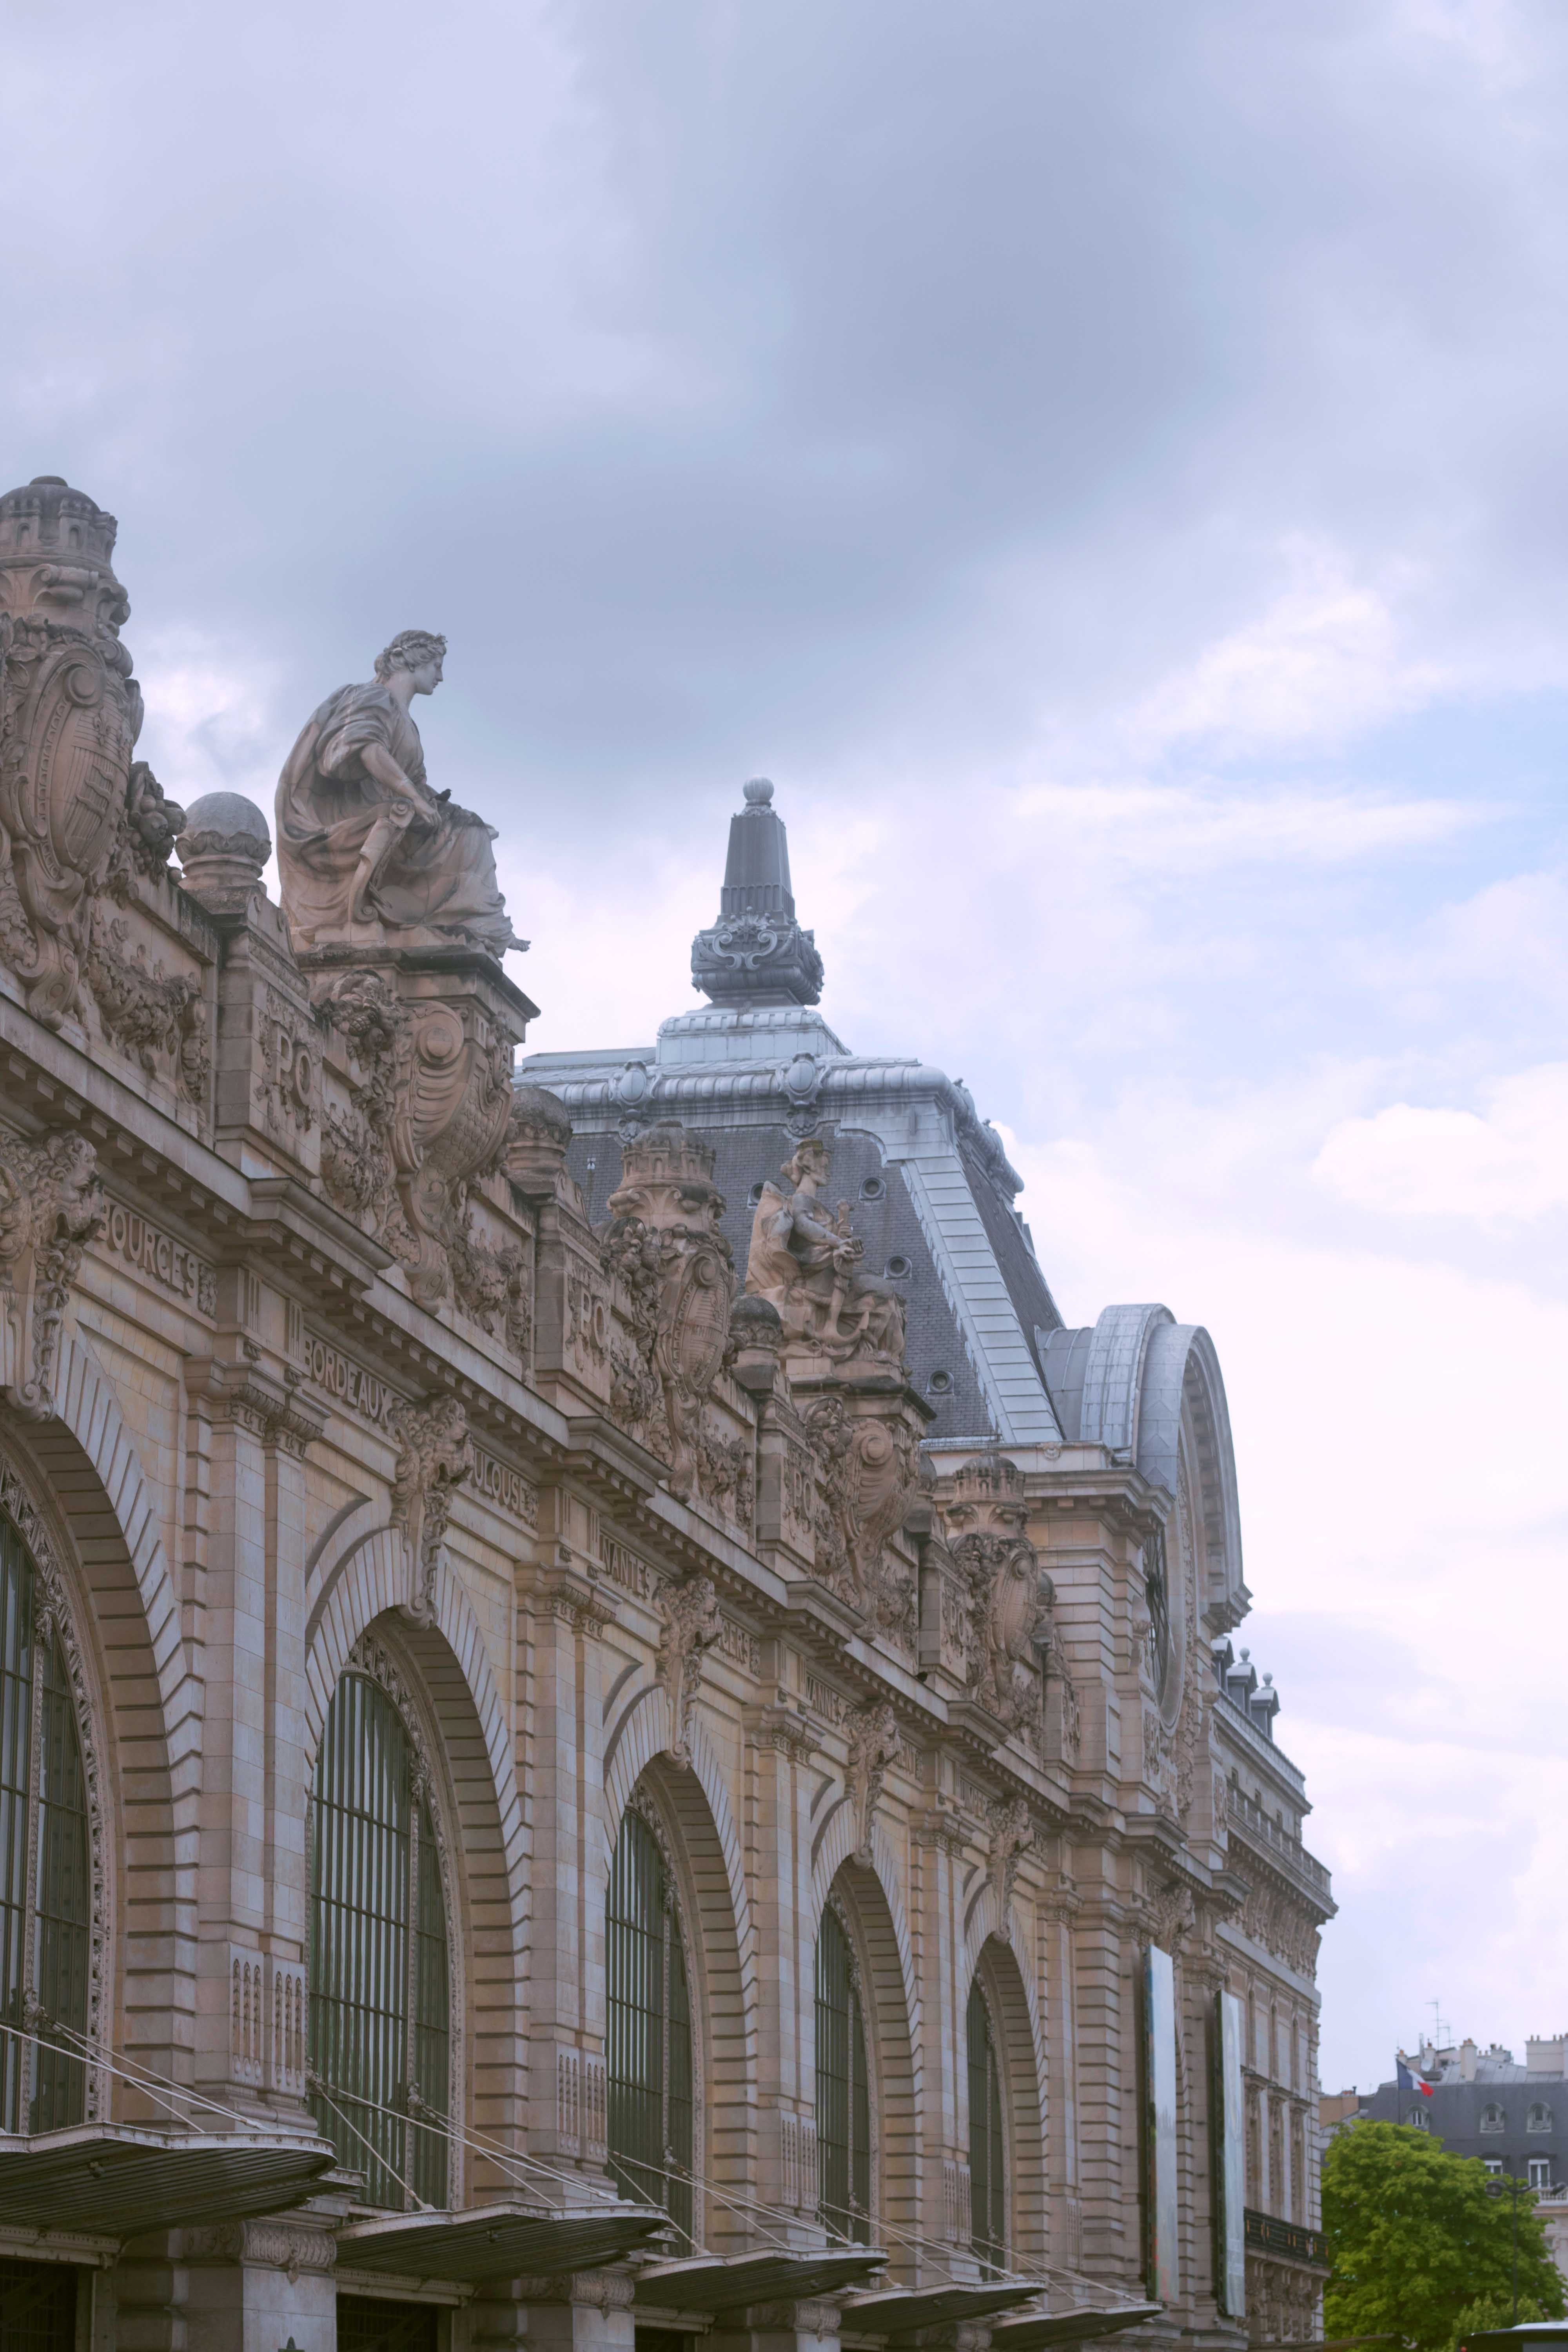 French Musuem and Architecture